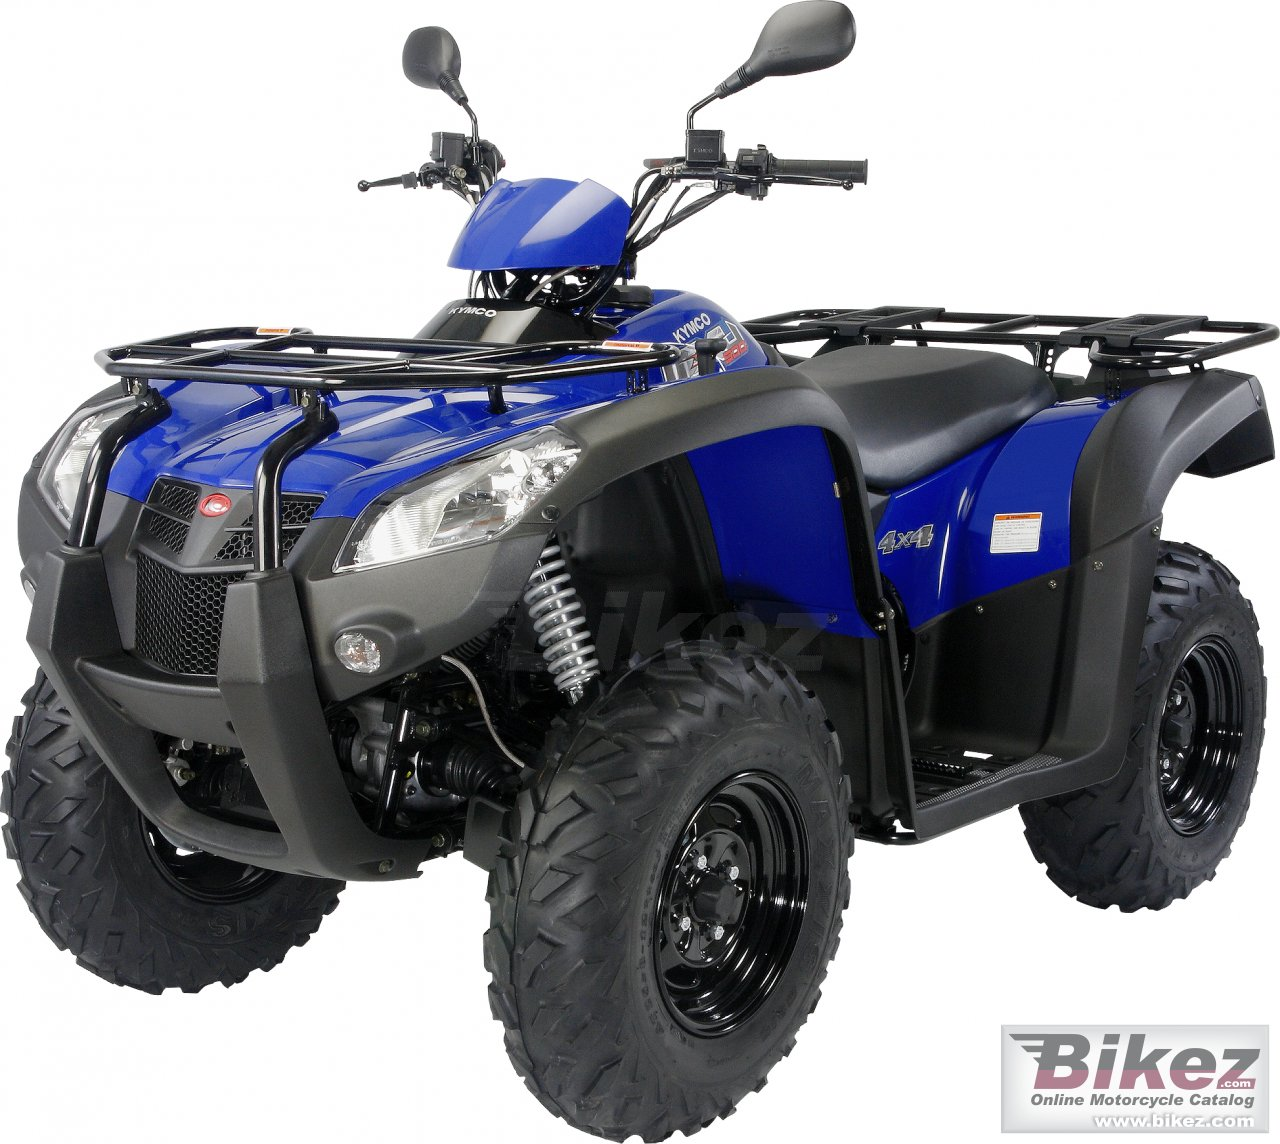 Big Kymco mxu 500 rl picture and wallpaper from Bikez.com